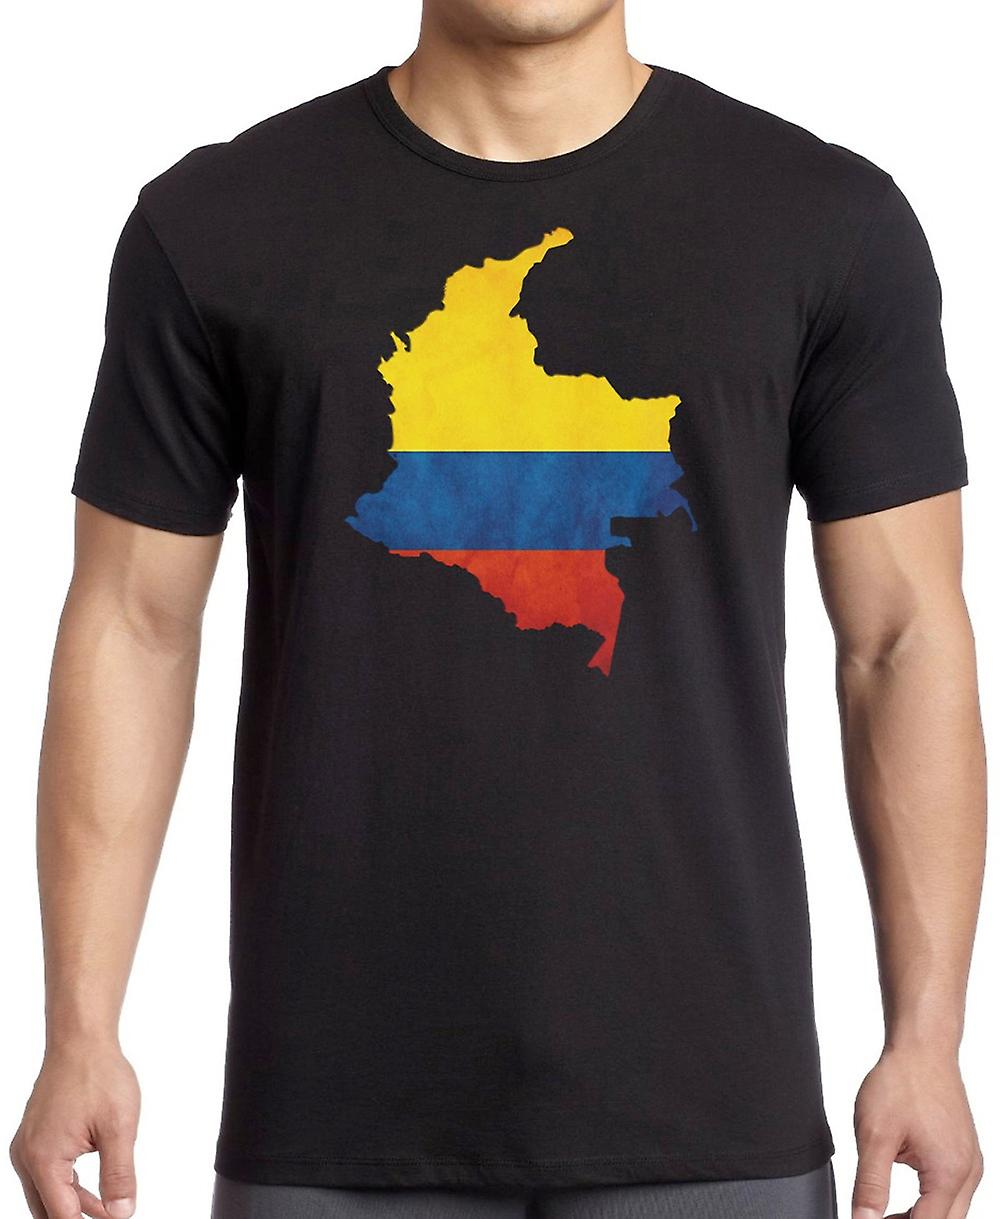 Kolumbianische Columbia Flagge Karte - Kinder T Shirt